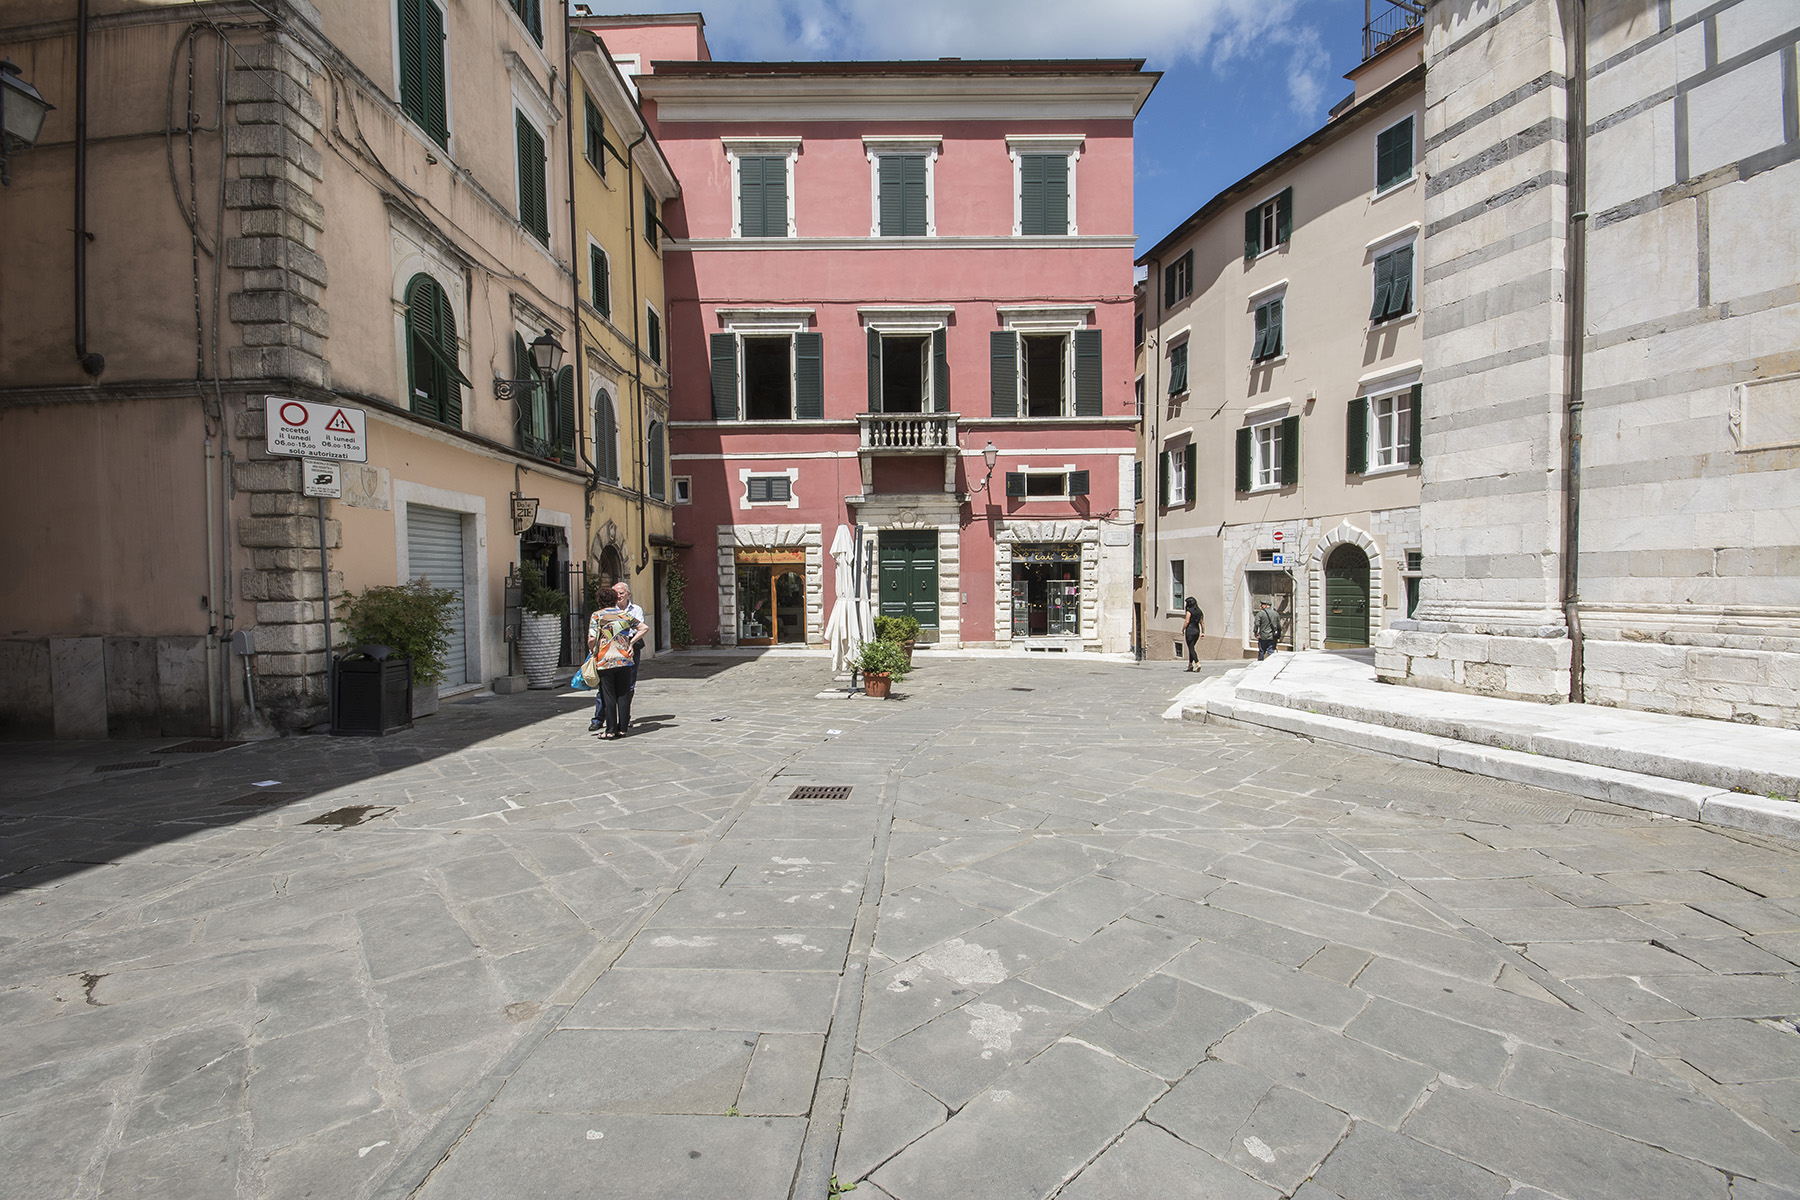 Single Family Home for Sale at Magnificent Renaissance Palazzo in the center of Carrara Carrara, Massa Carrara Italy